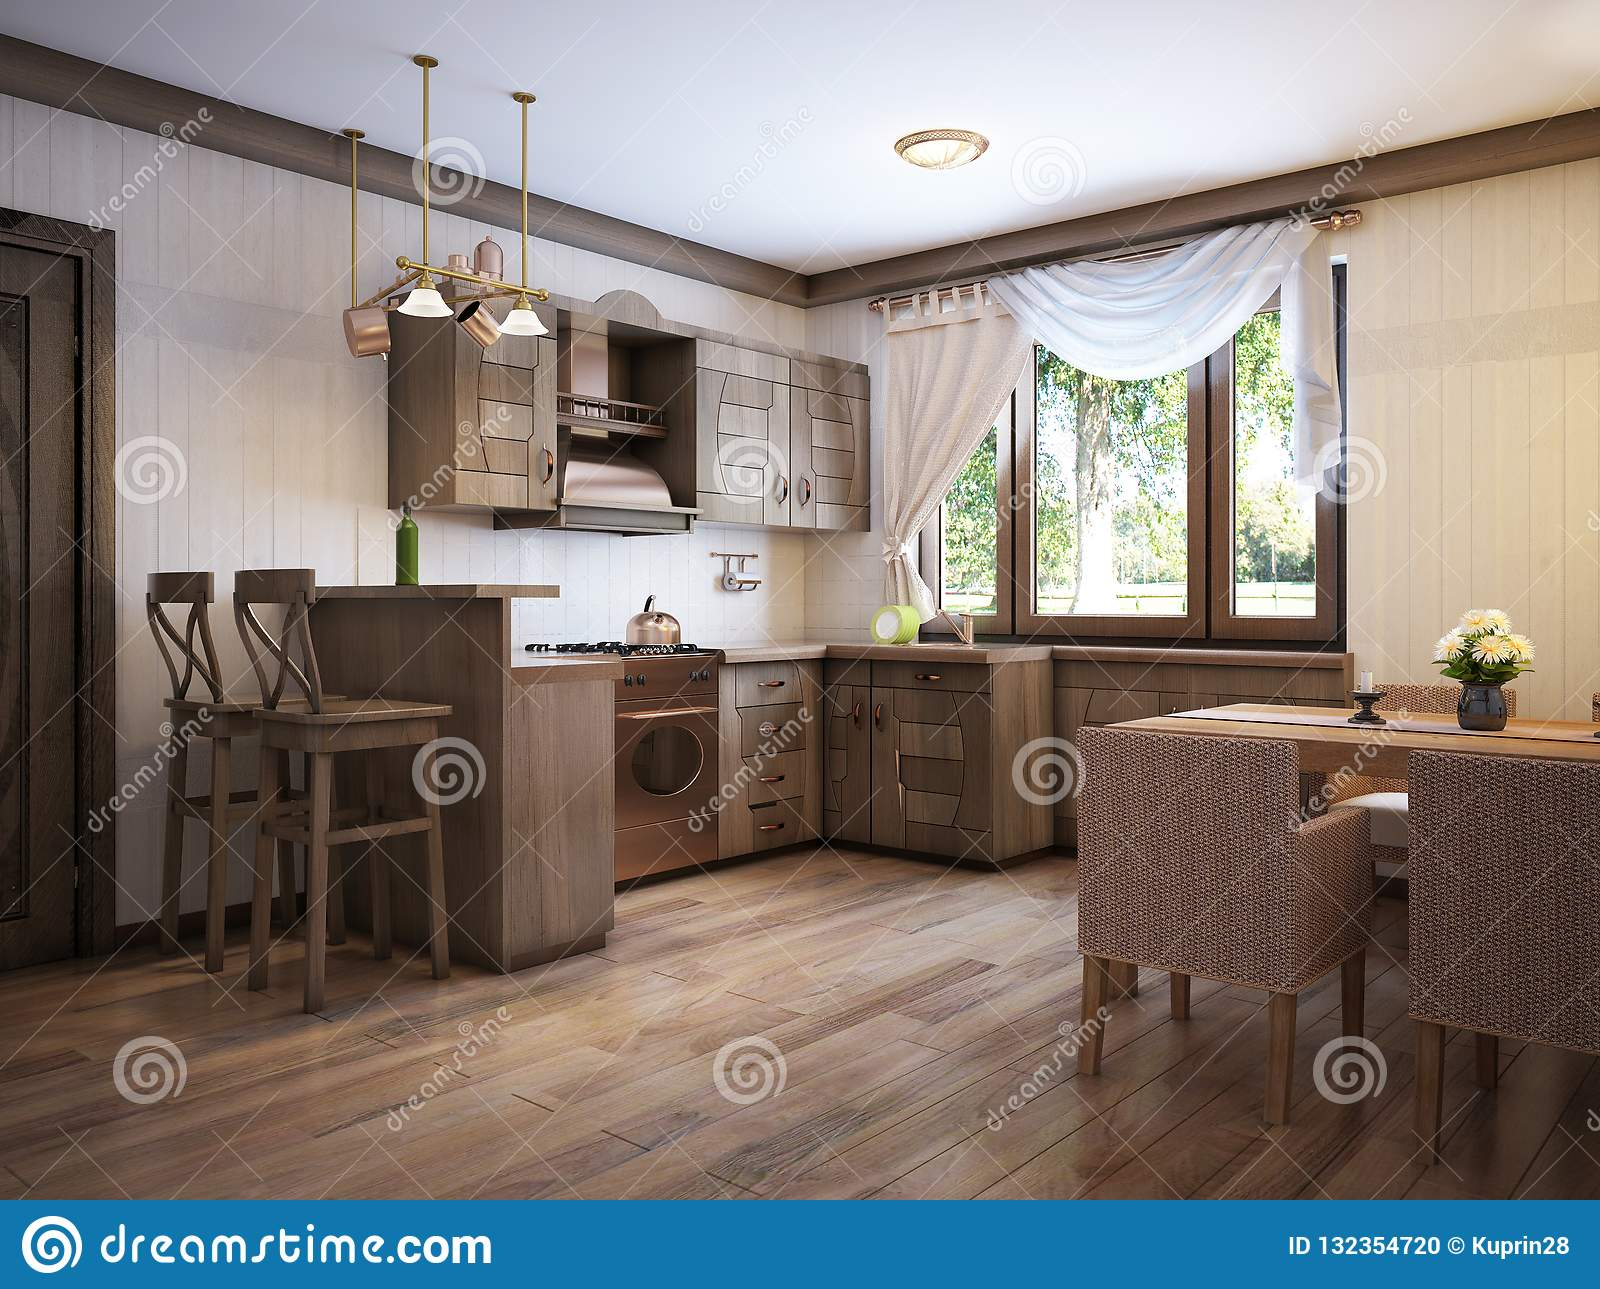 Kitchen rustic style with a dining table and wooden furniture